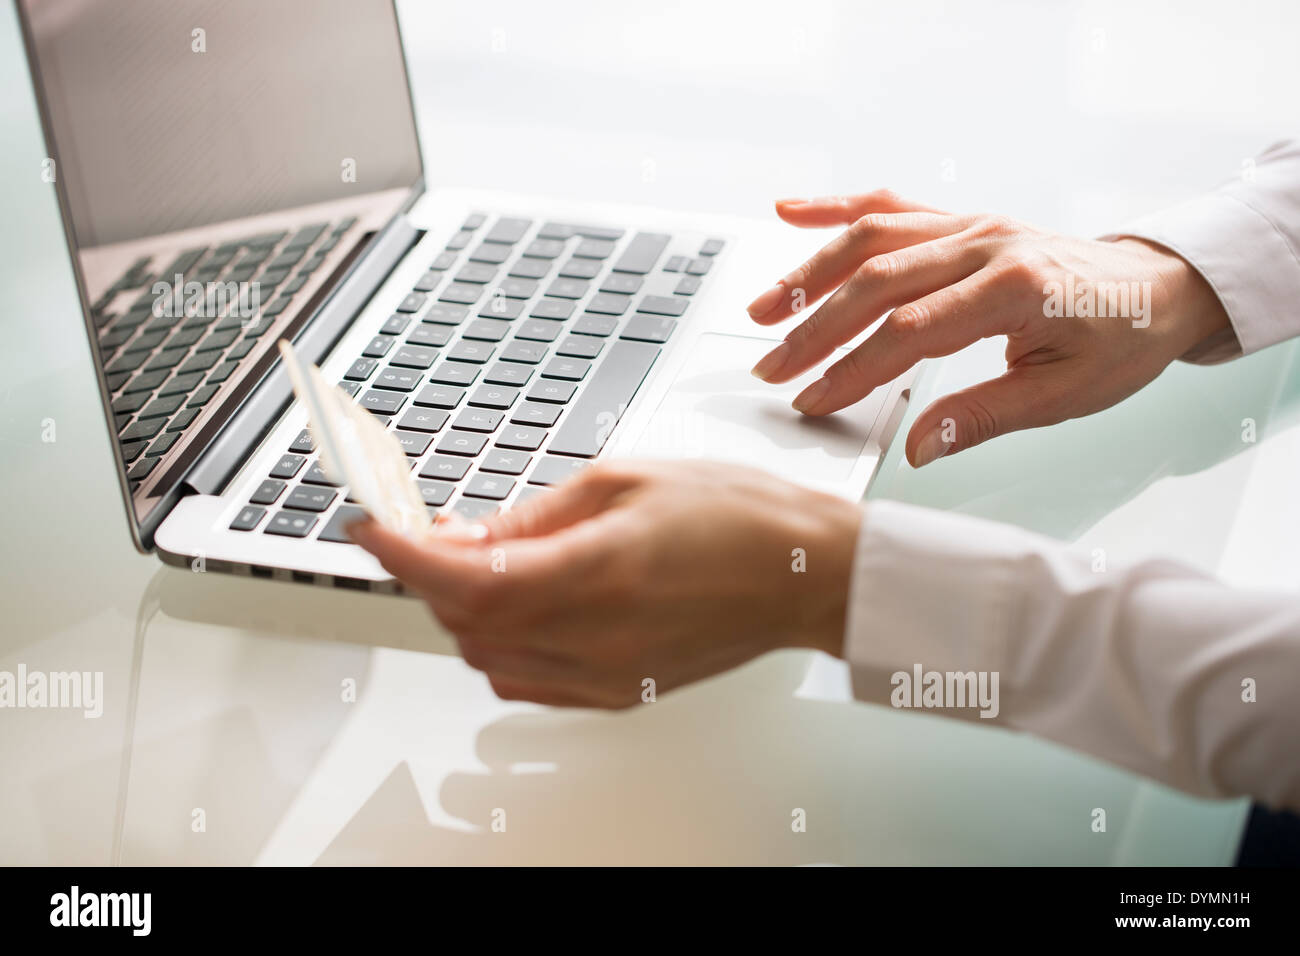 Woman shopping on internet using laptop and credit card - Stock Image